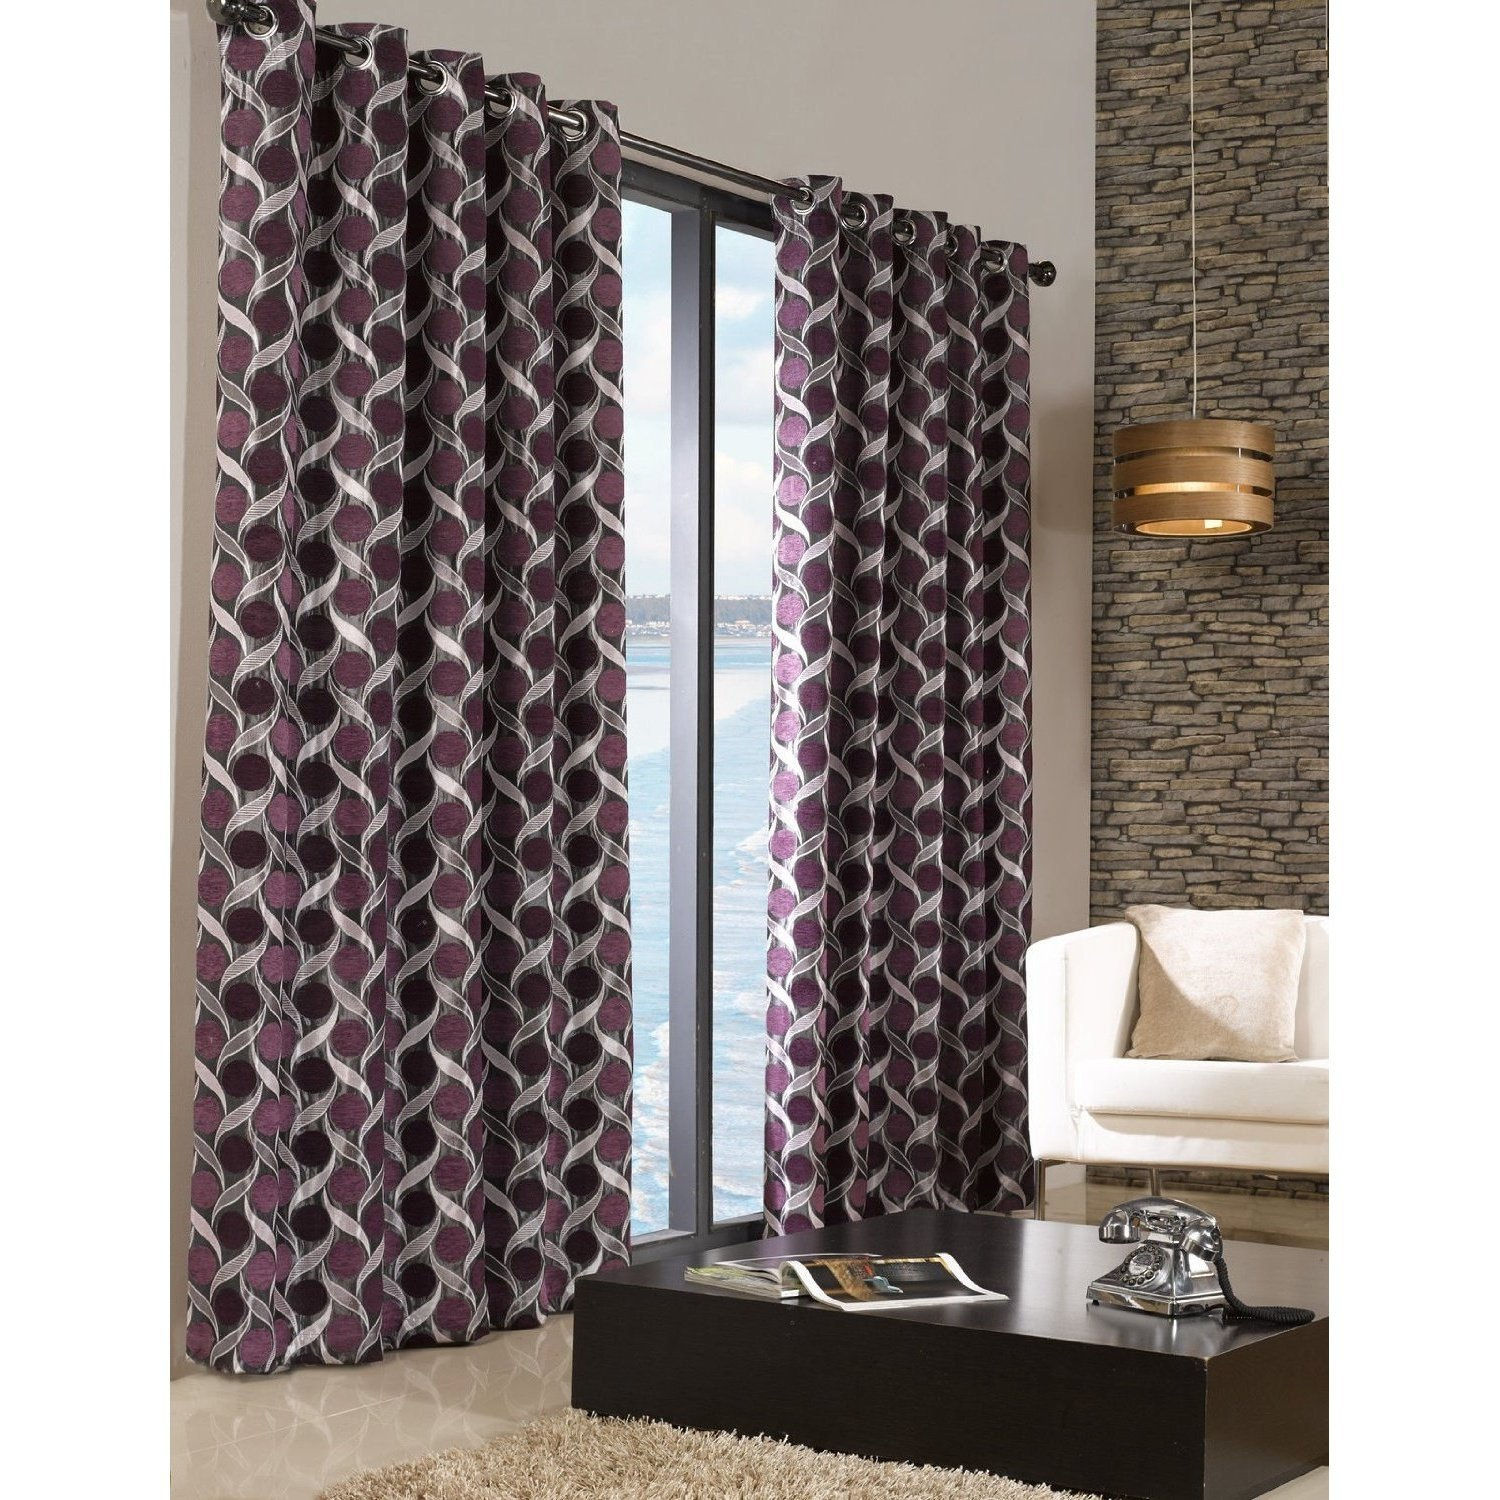 Patterned Curtains For Living Room. Chenille Patterned Fully Lined Eyelet Ring Top Curtains Ready Made Living  Room eBay